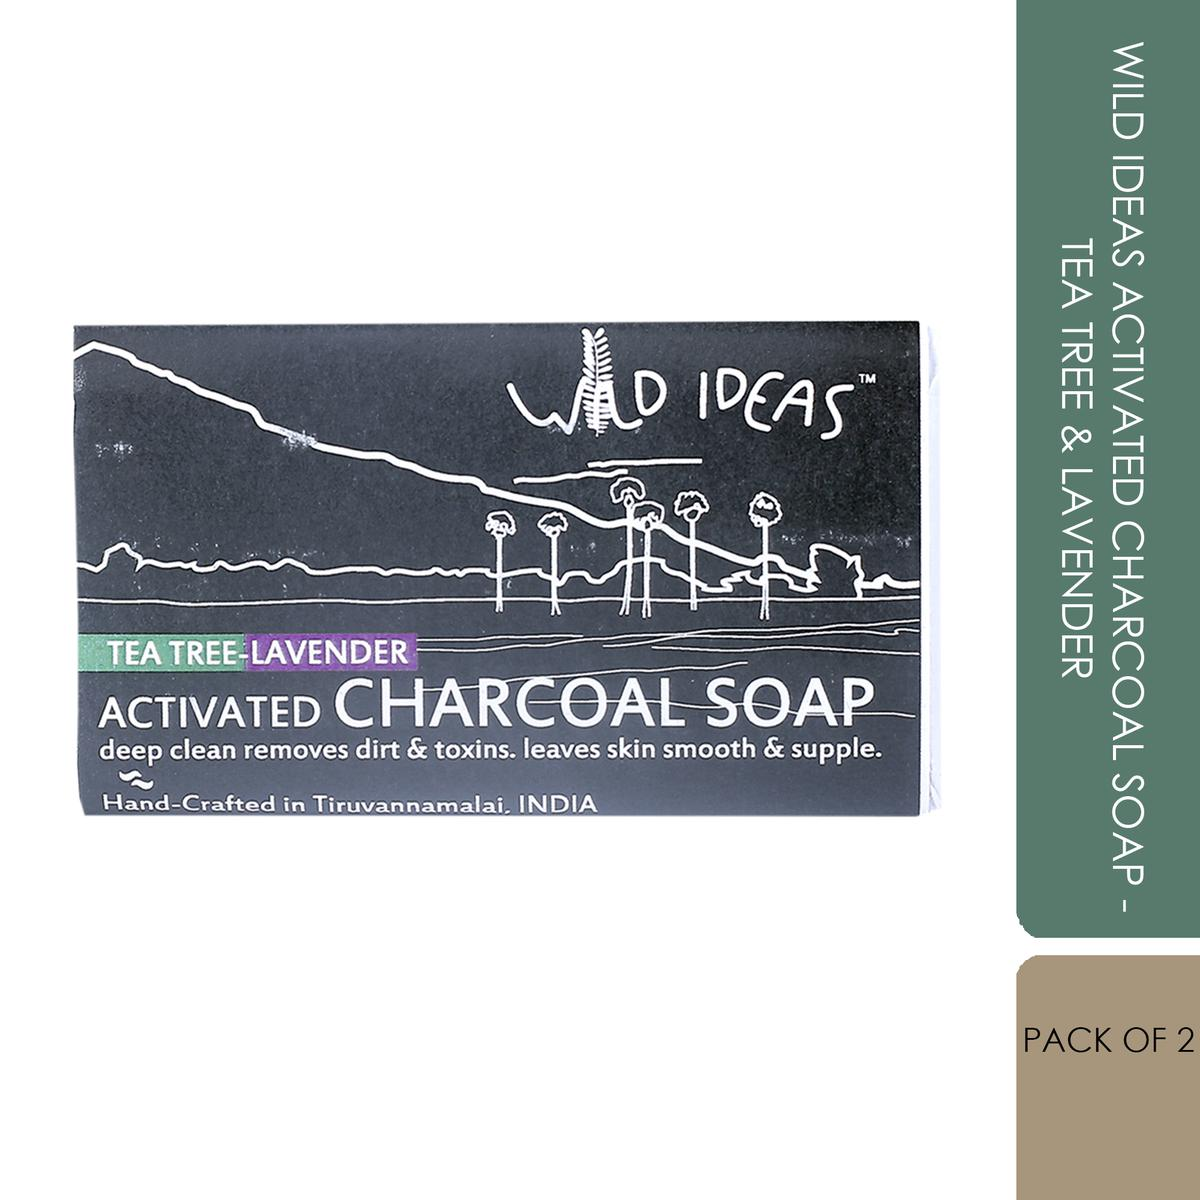 Wild Ideas Activated Charcoal Soap - Tea Tree & Lavender (Pack of 2)